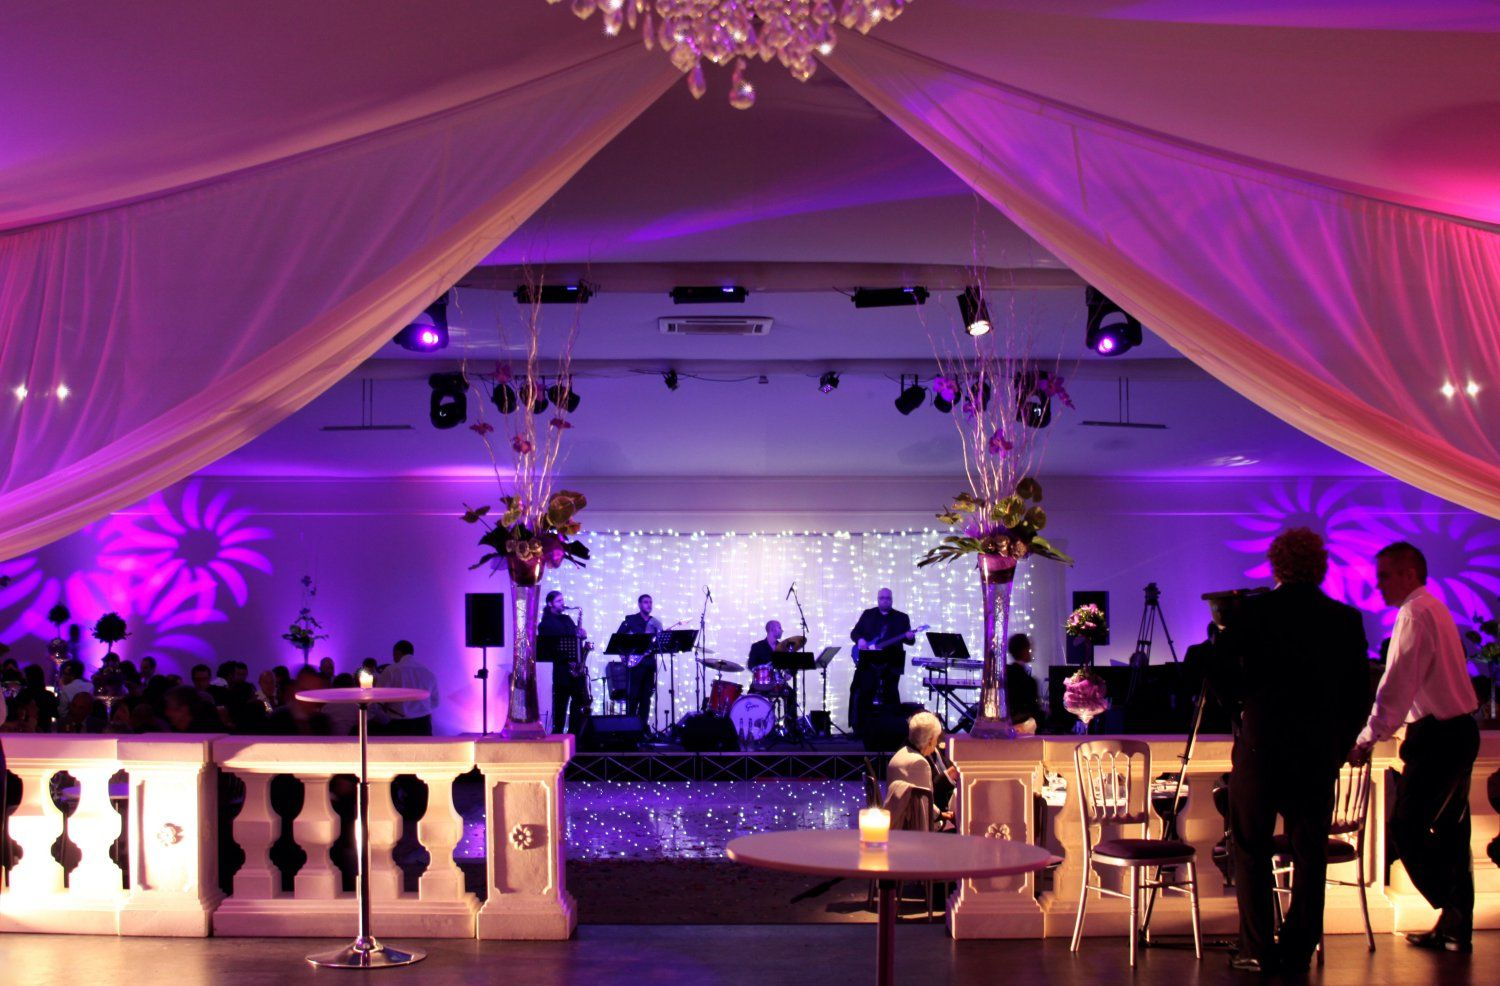 marquee lighting. Marquee Lighting With Stage And White Backdrop O